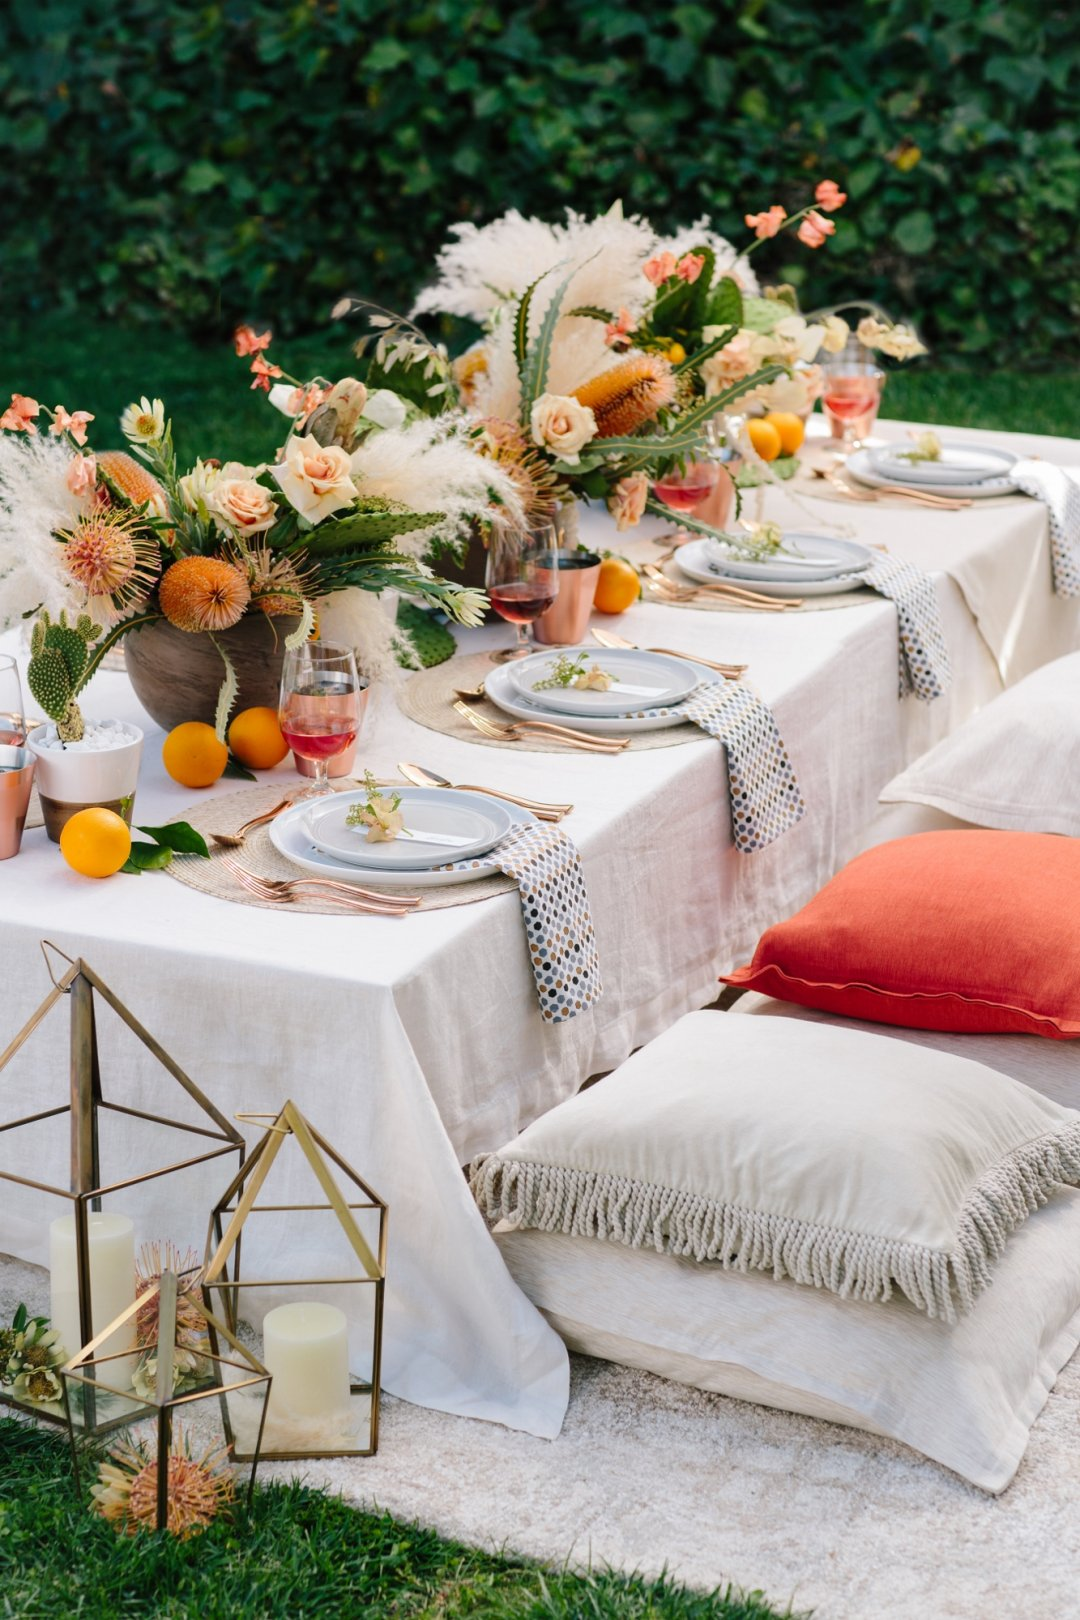 Side view of table set for party, with pillows as seats and lanterns near by